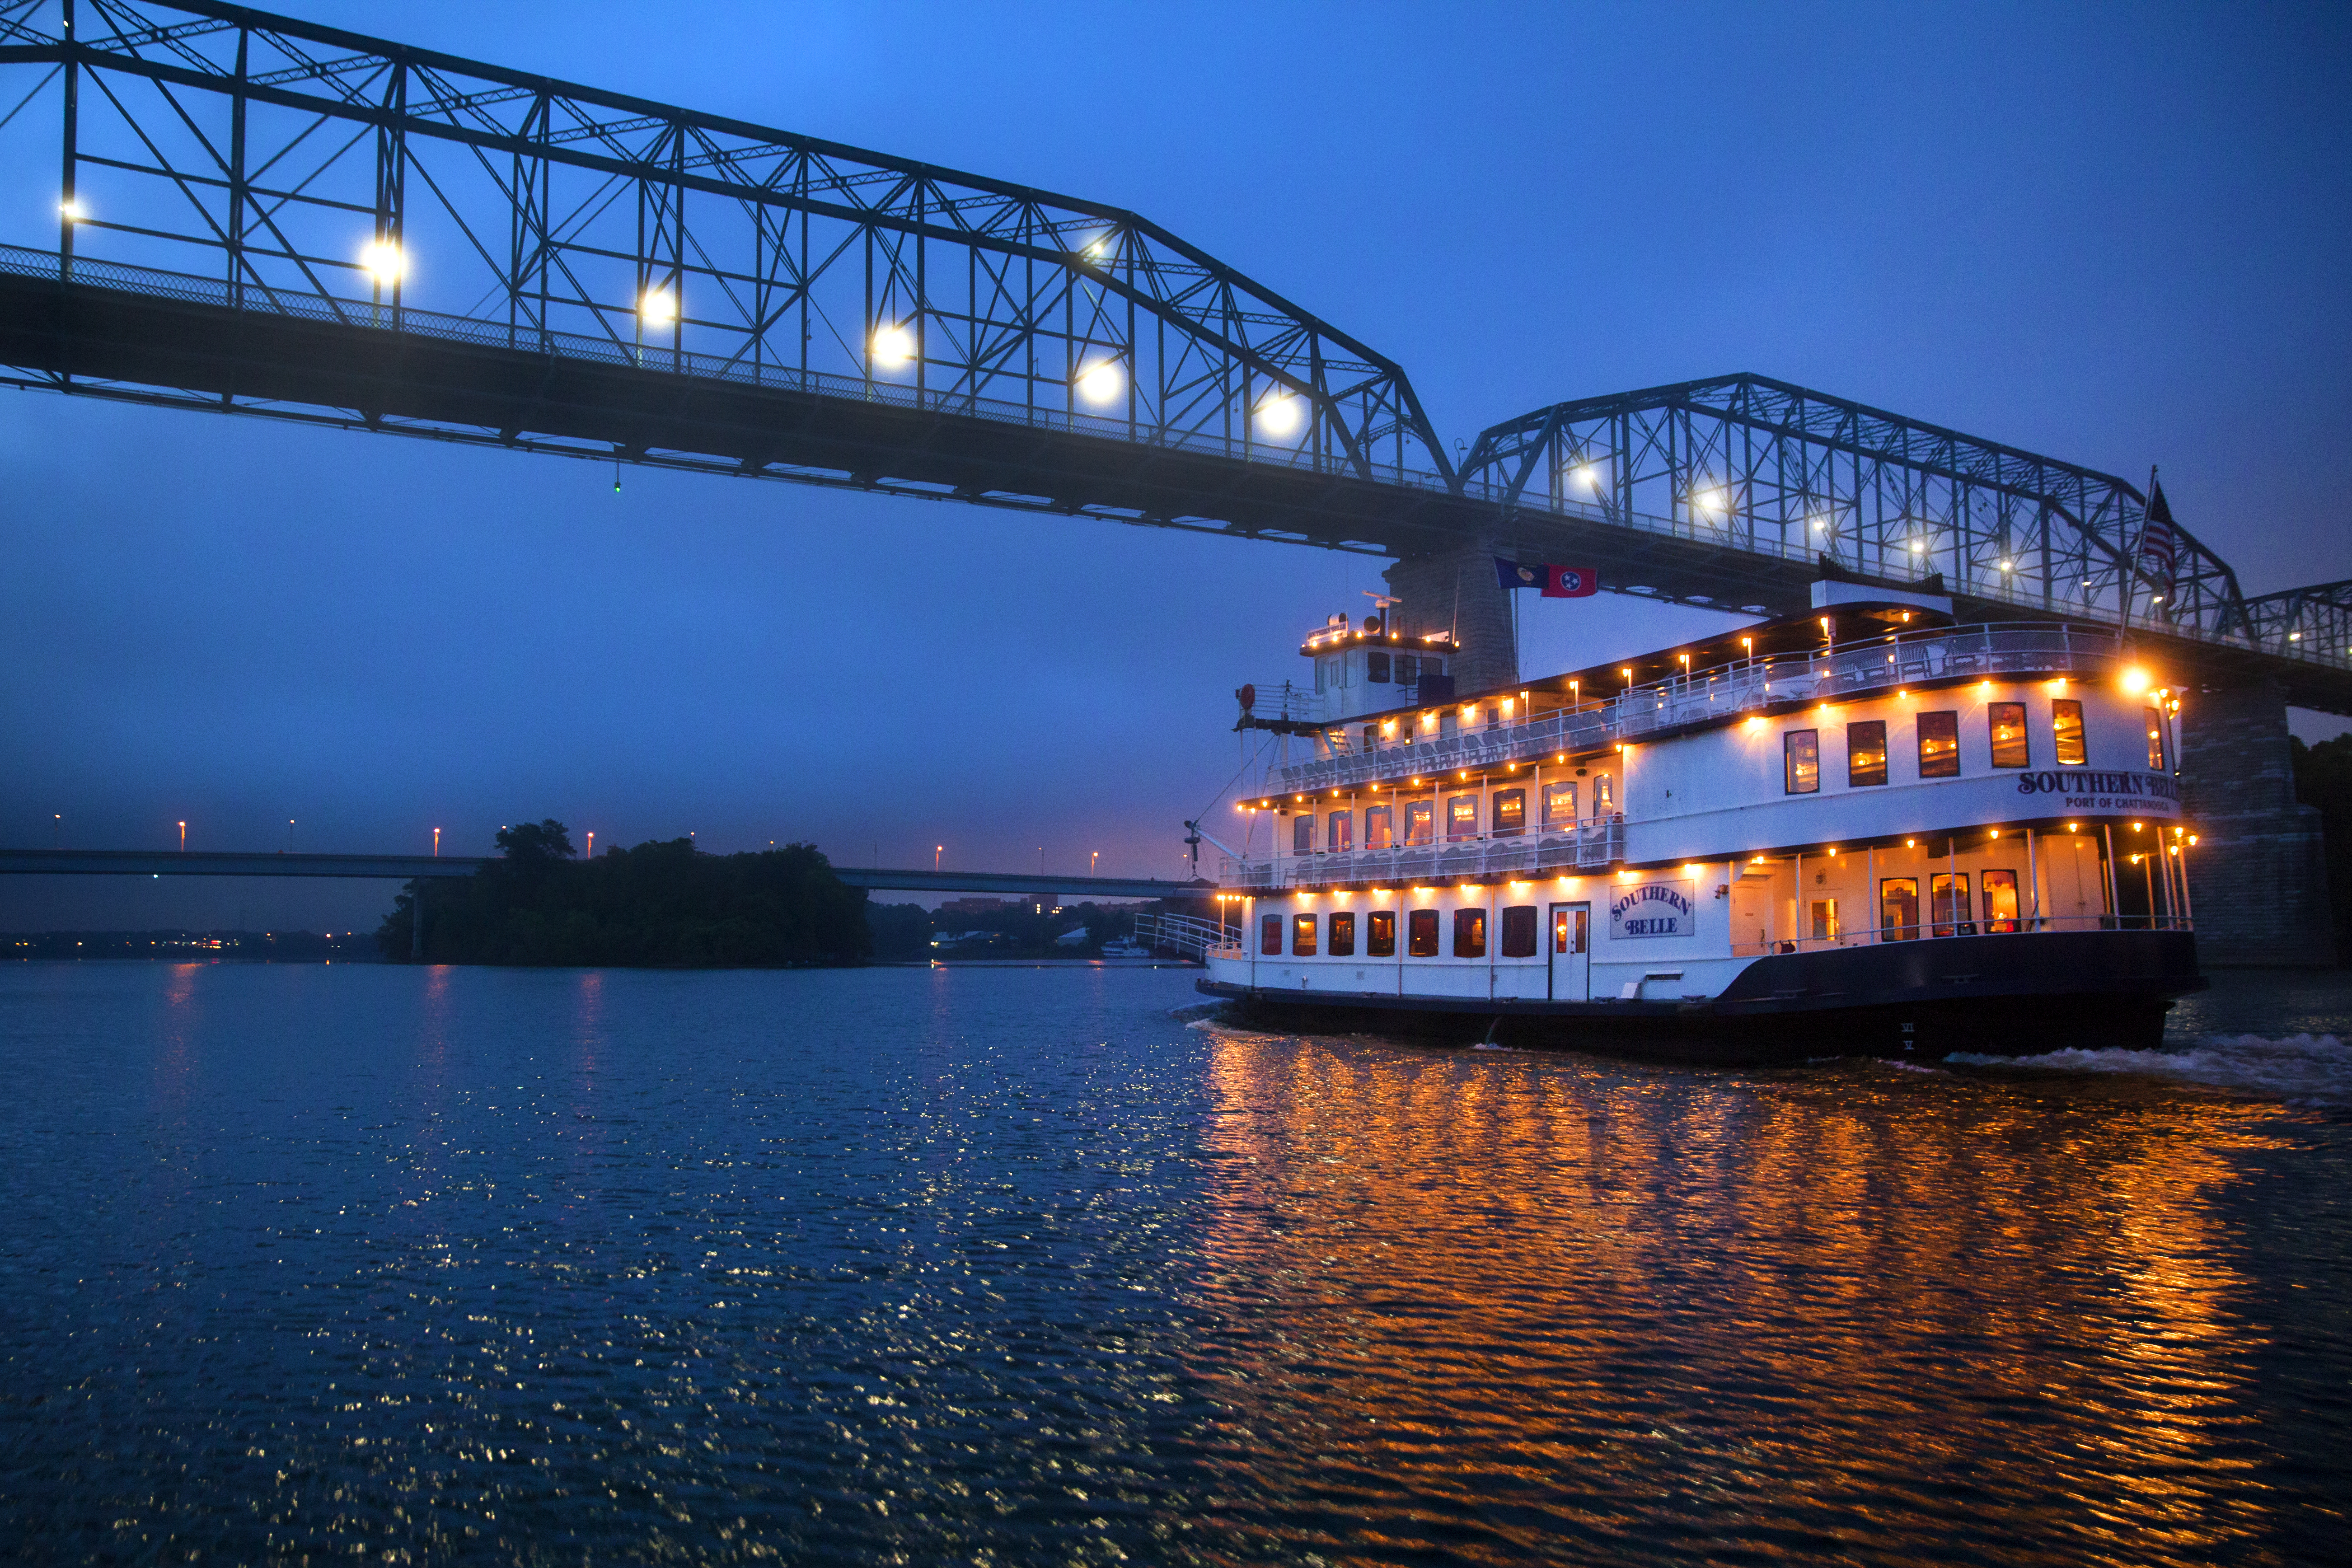 Southern Belle New Year's cruise in Chattanooga.